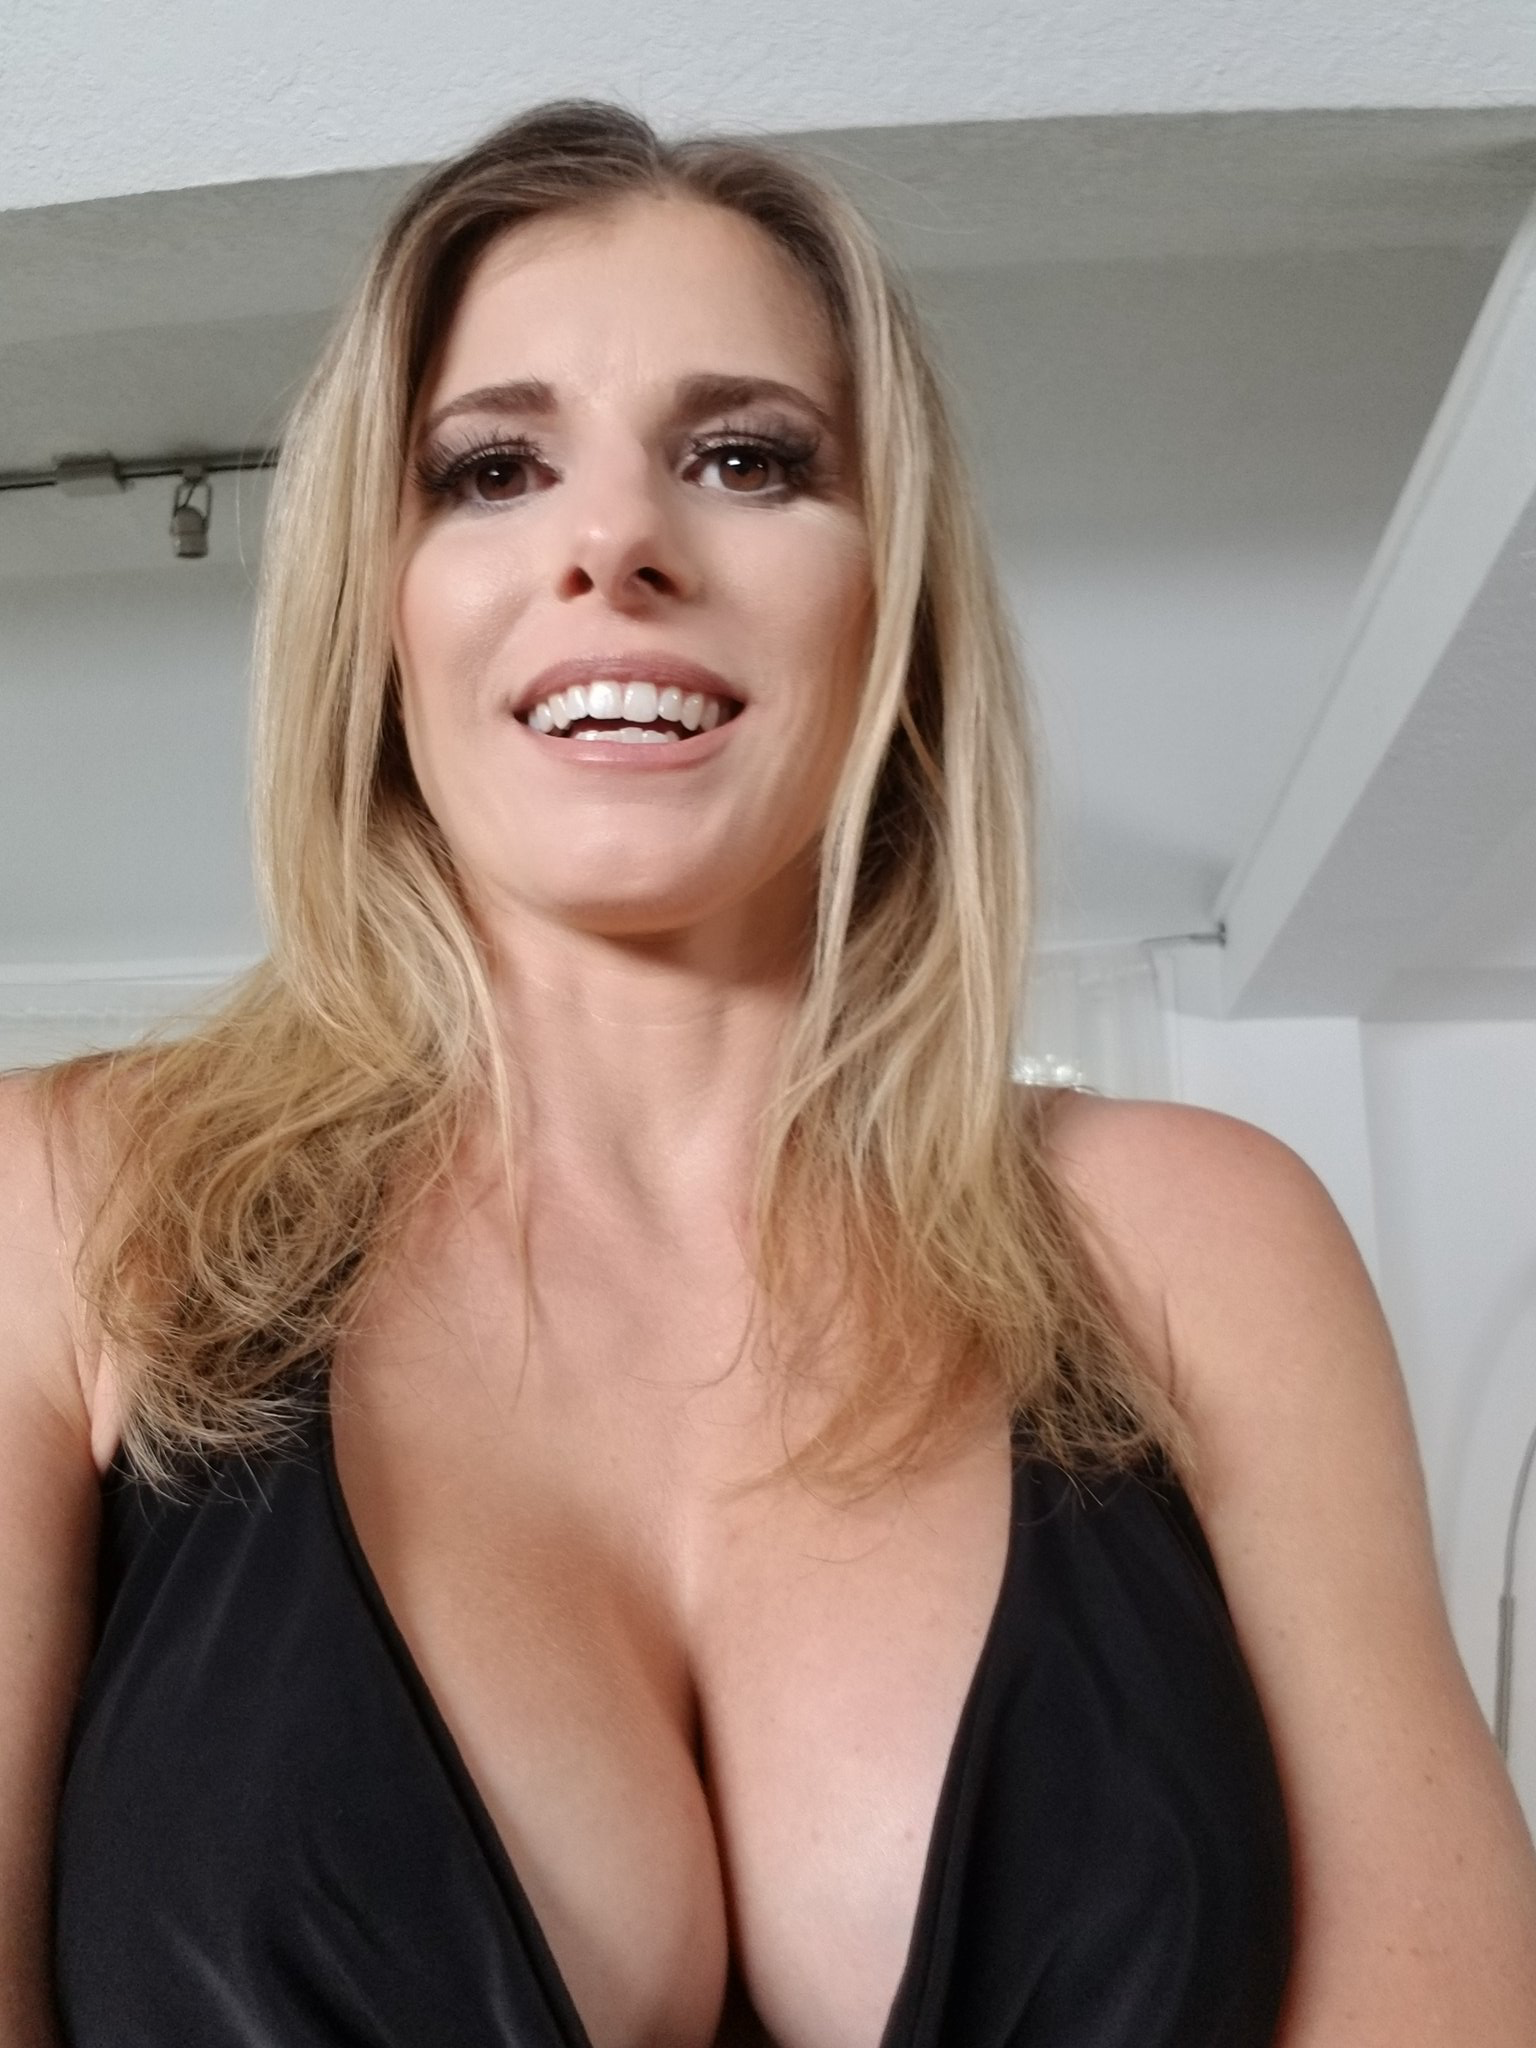 Cory chase thanks for giving